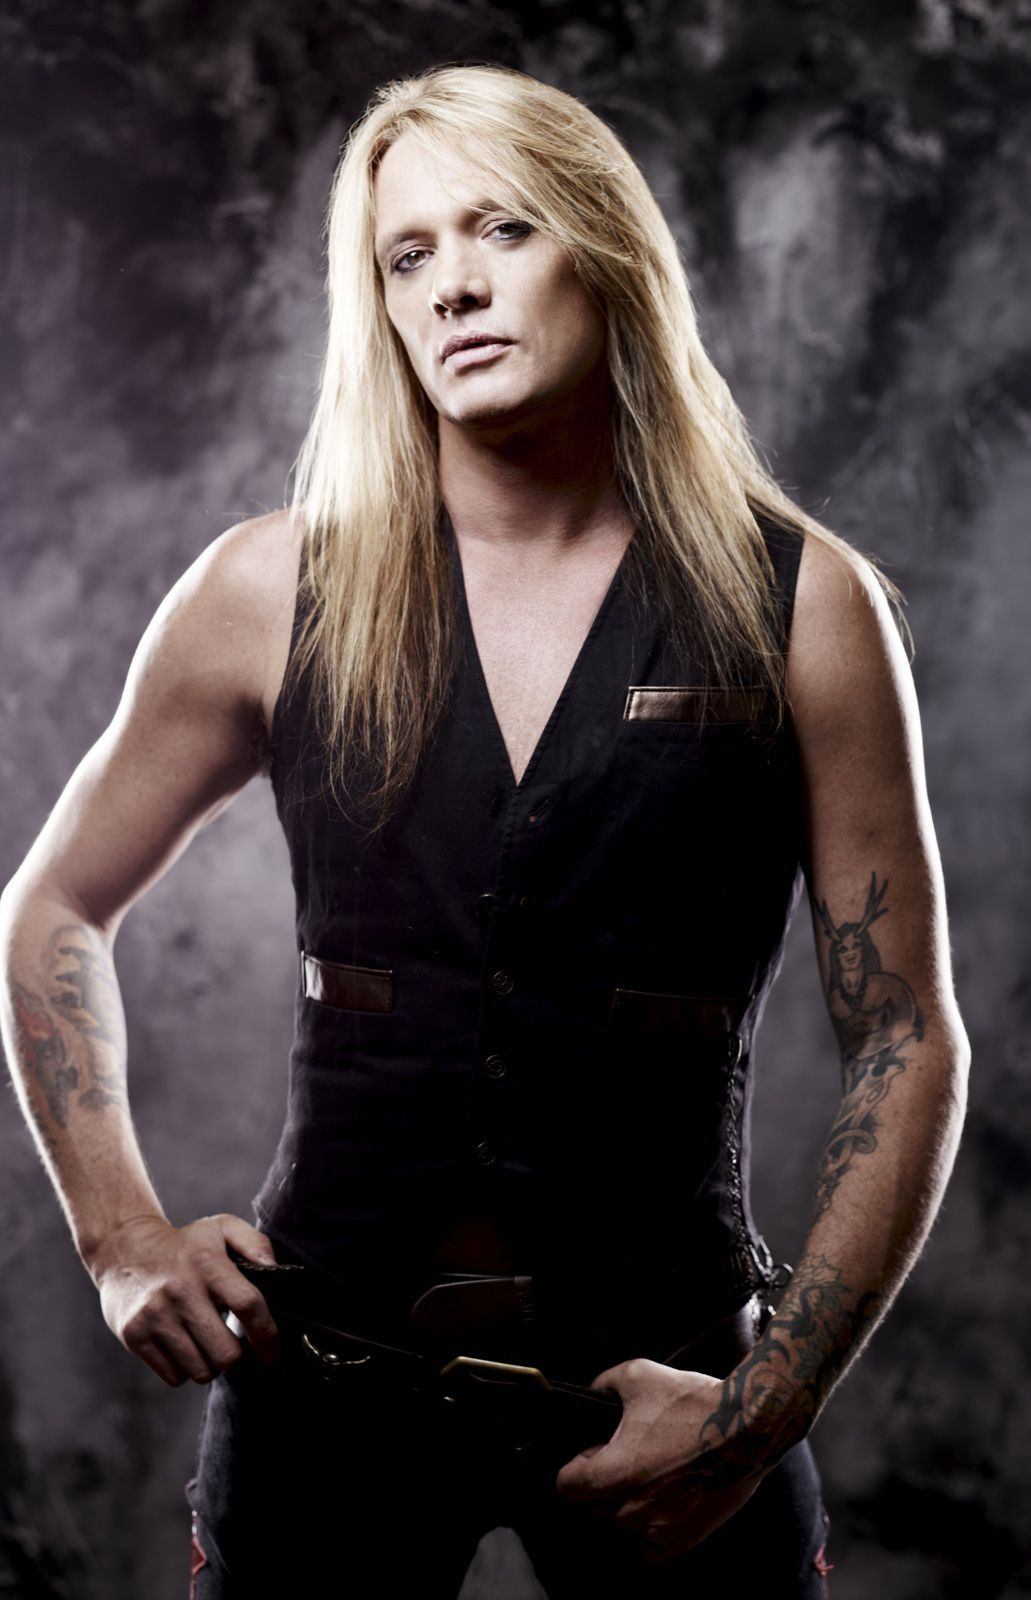 Sebastian Bach - 2008 - photo credit Clay- Patrick McBride